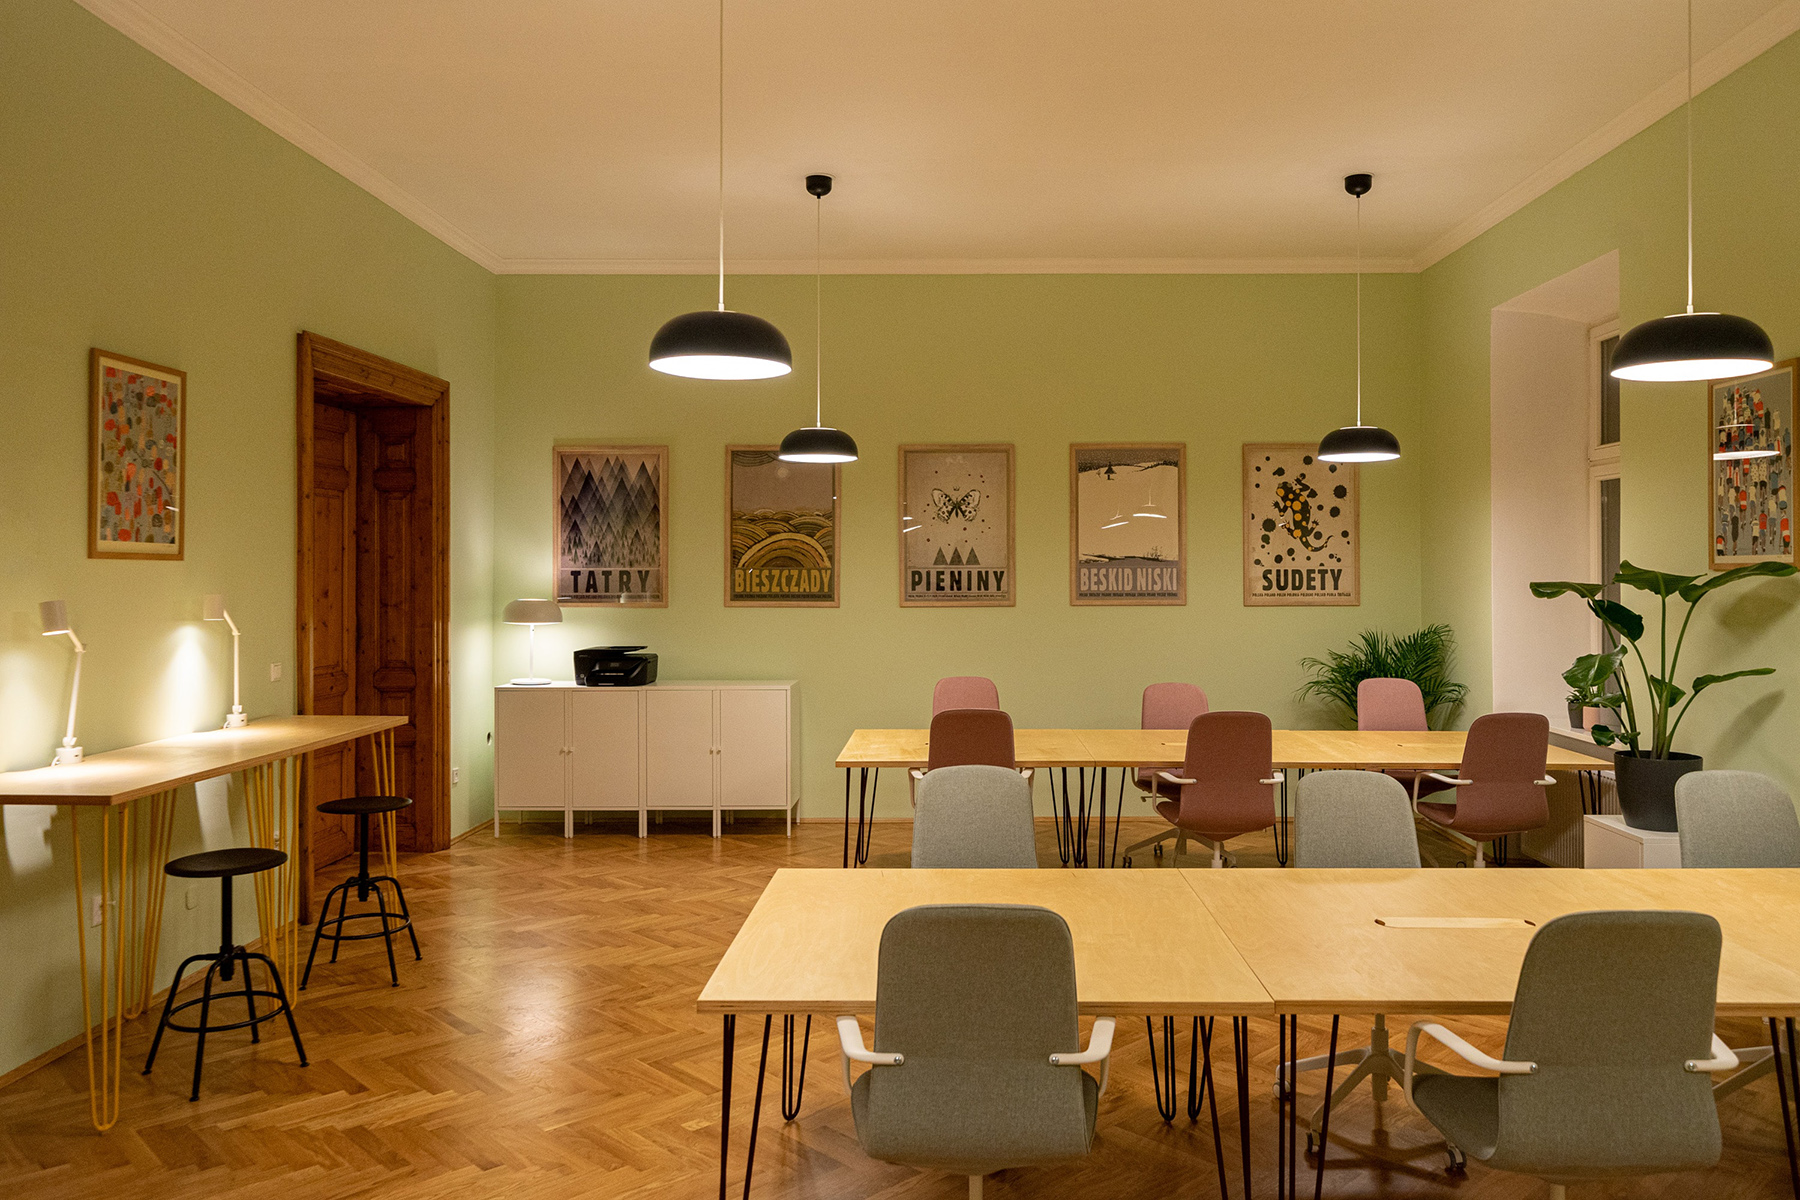 A common area in a coworking space